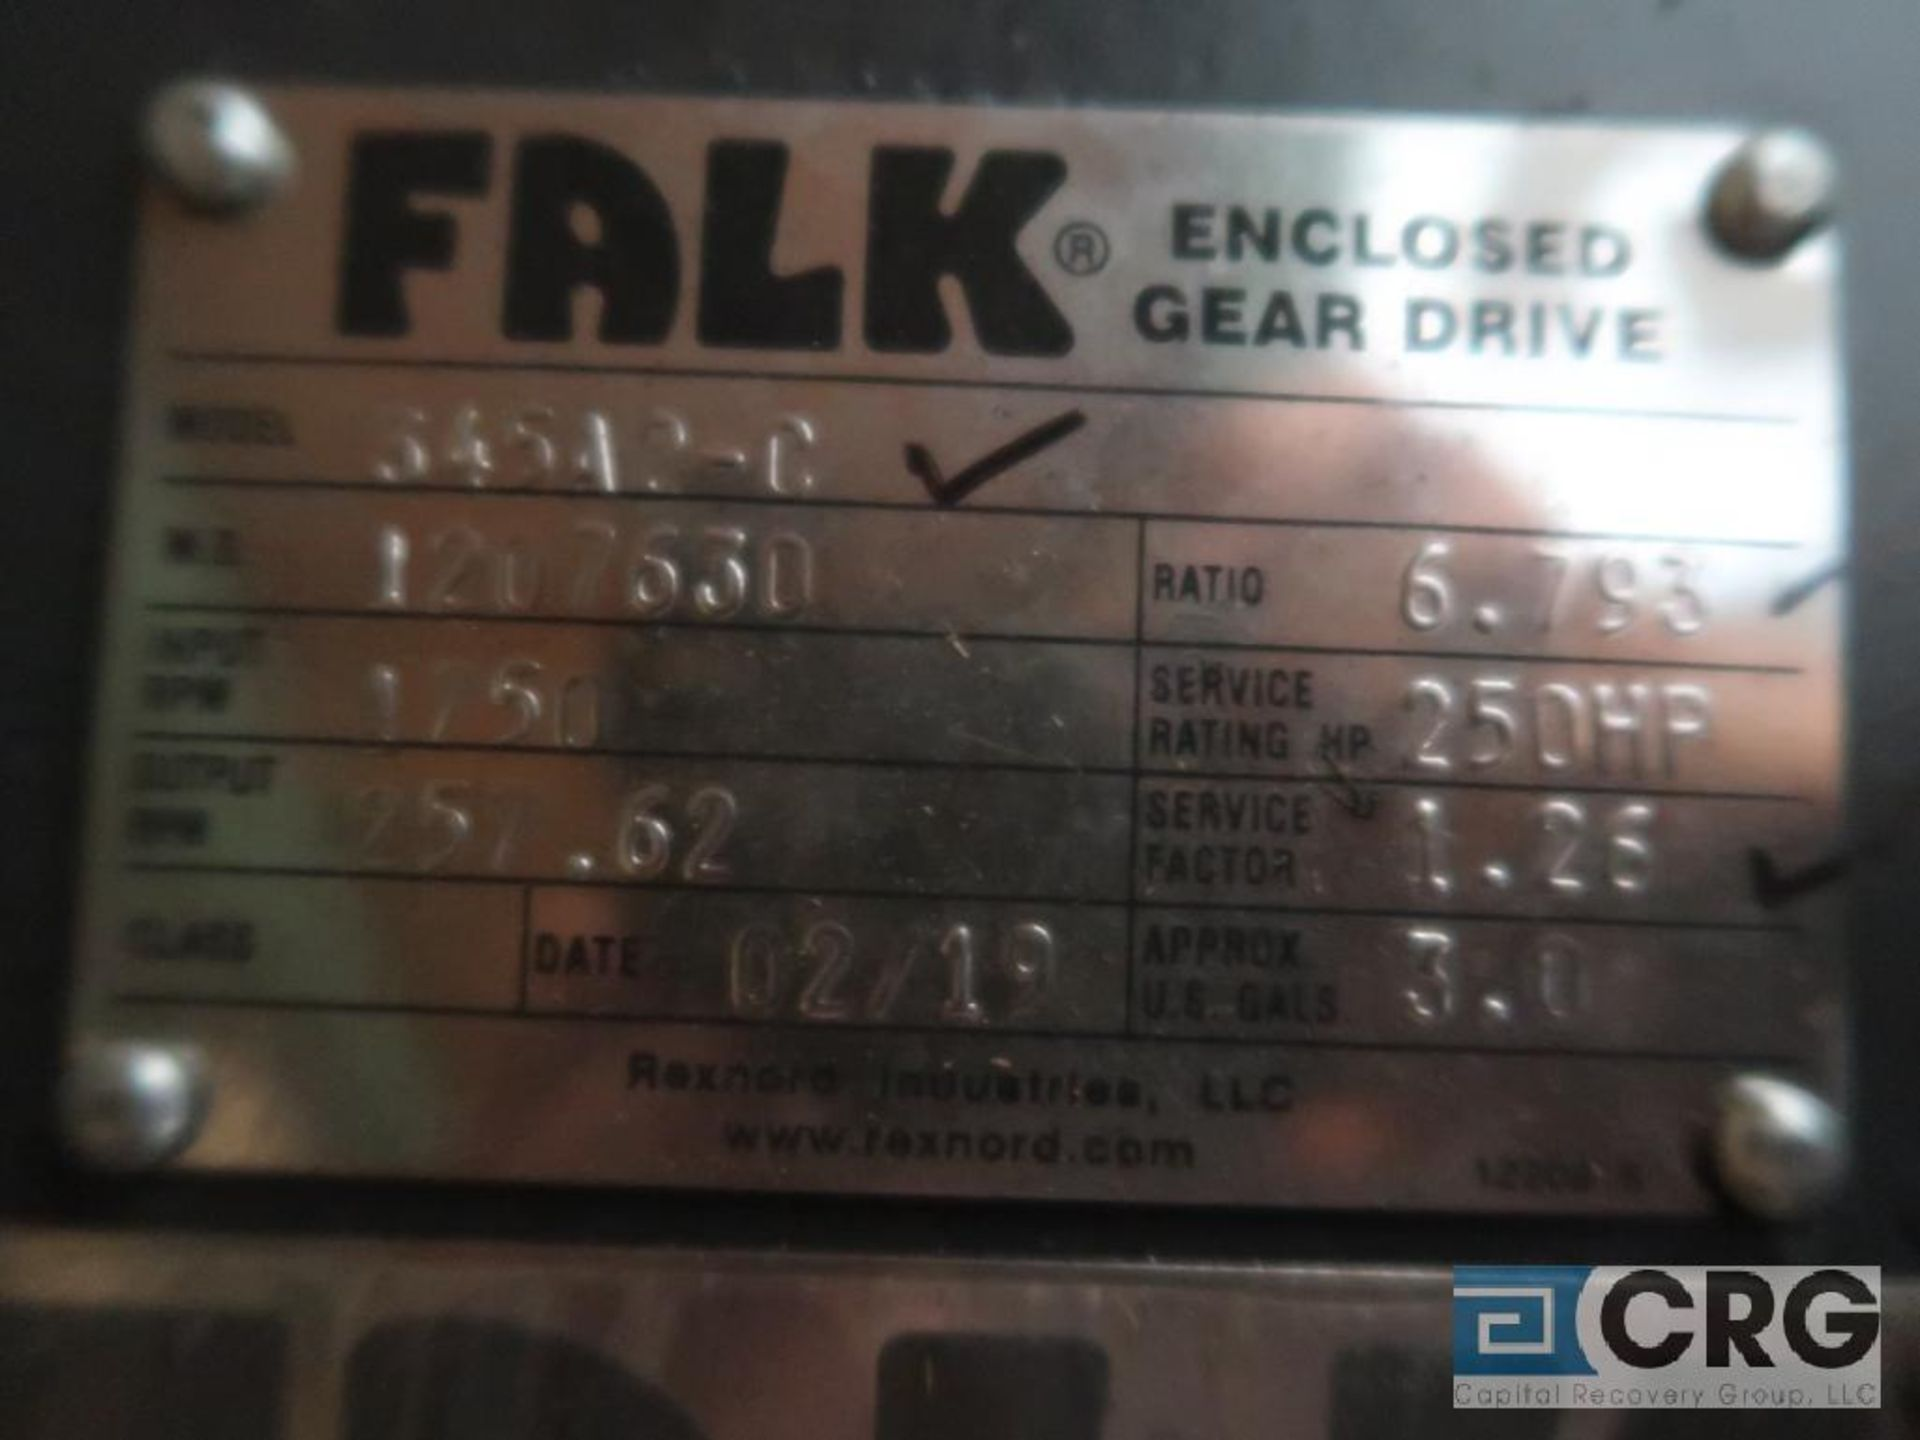 Falk 345 A 2C gear drive, ratio-6.793, input RPM 1,750, output RPM 257.62, service rate HP. 250, s/n - Image 2 of 2